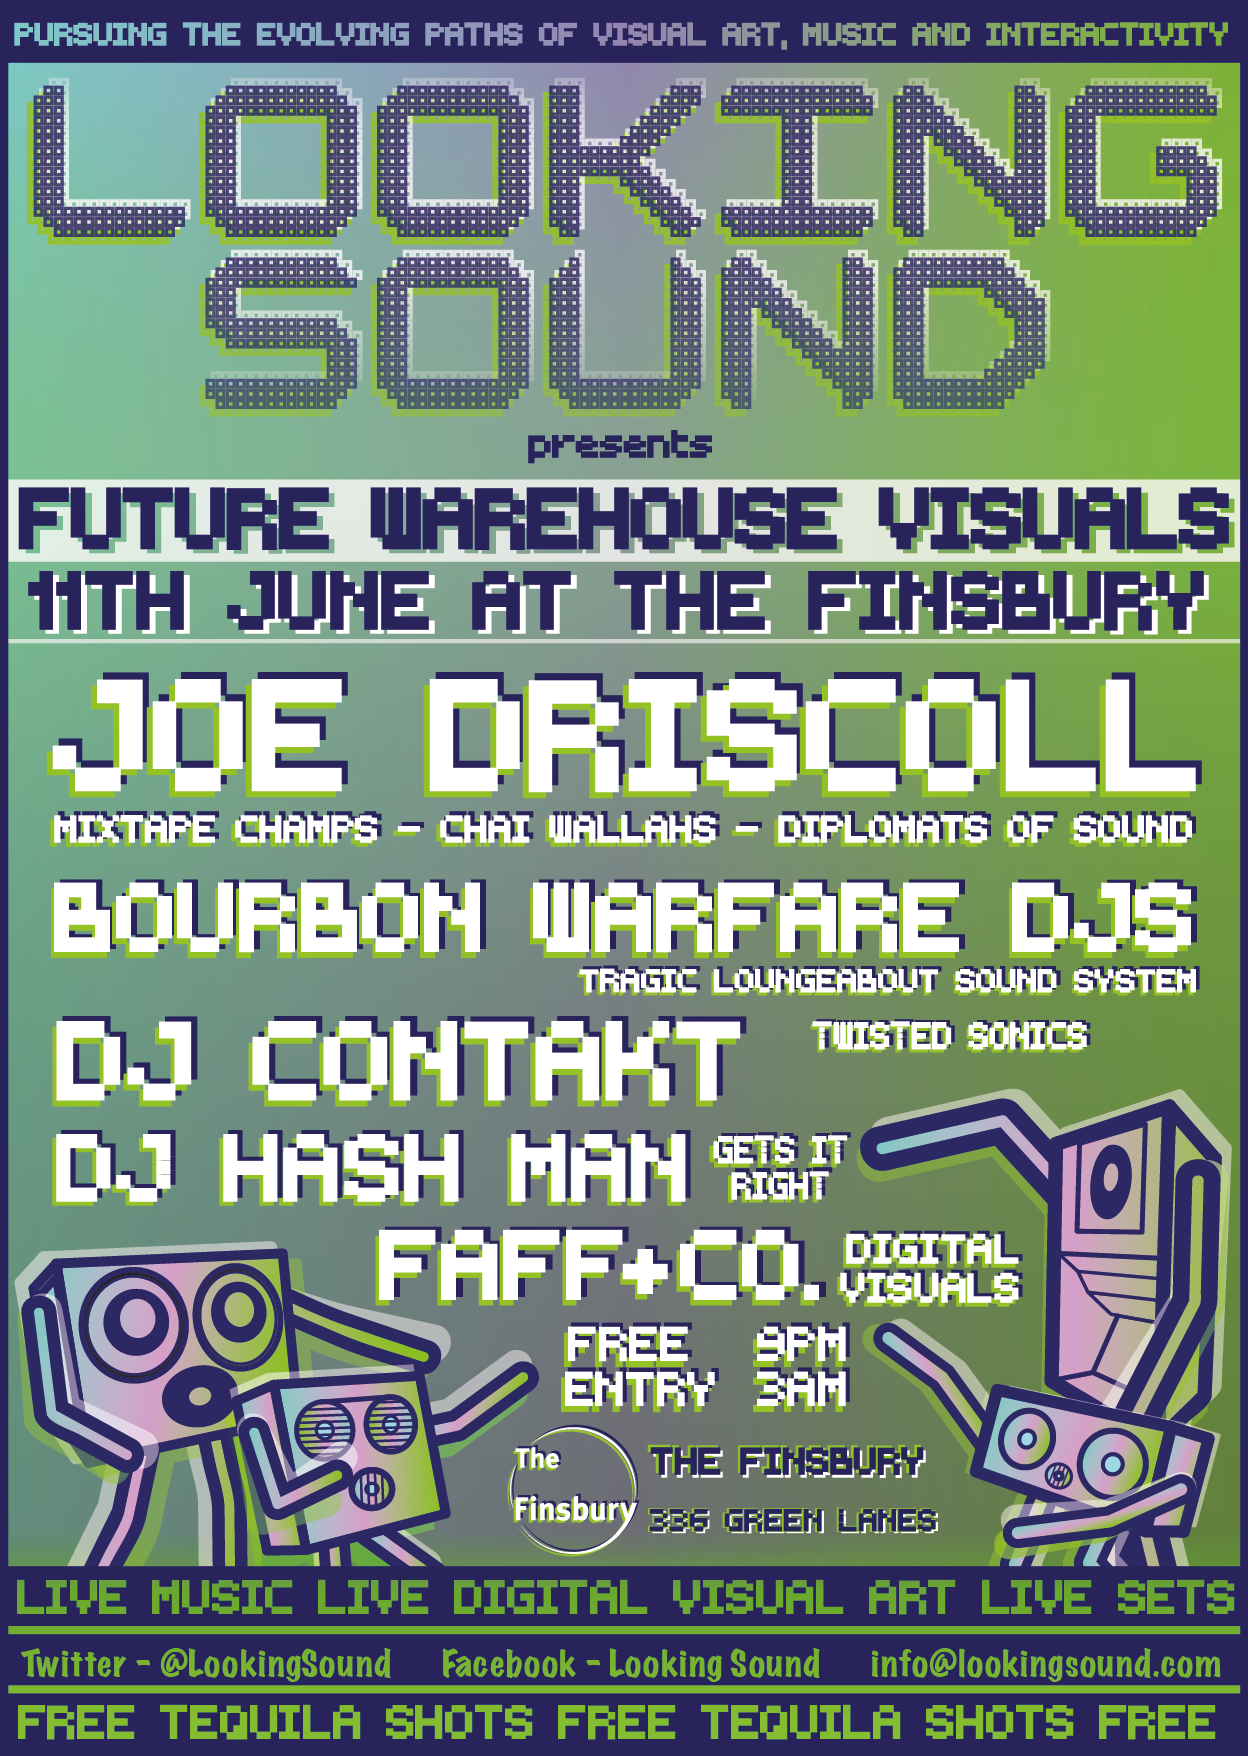 NEXT LOOKING SOUND 11th June - Finsbury Pub near manor house tube